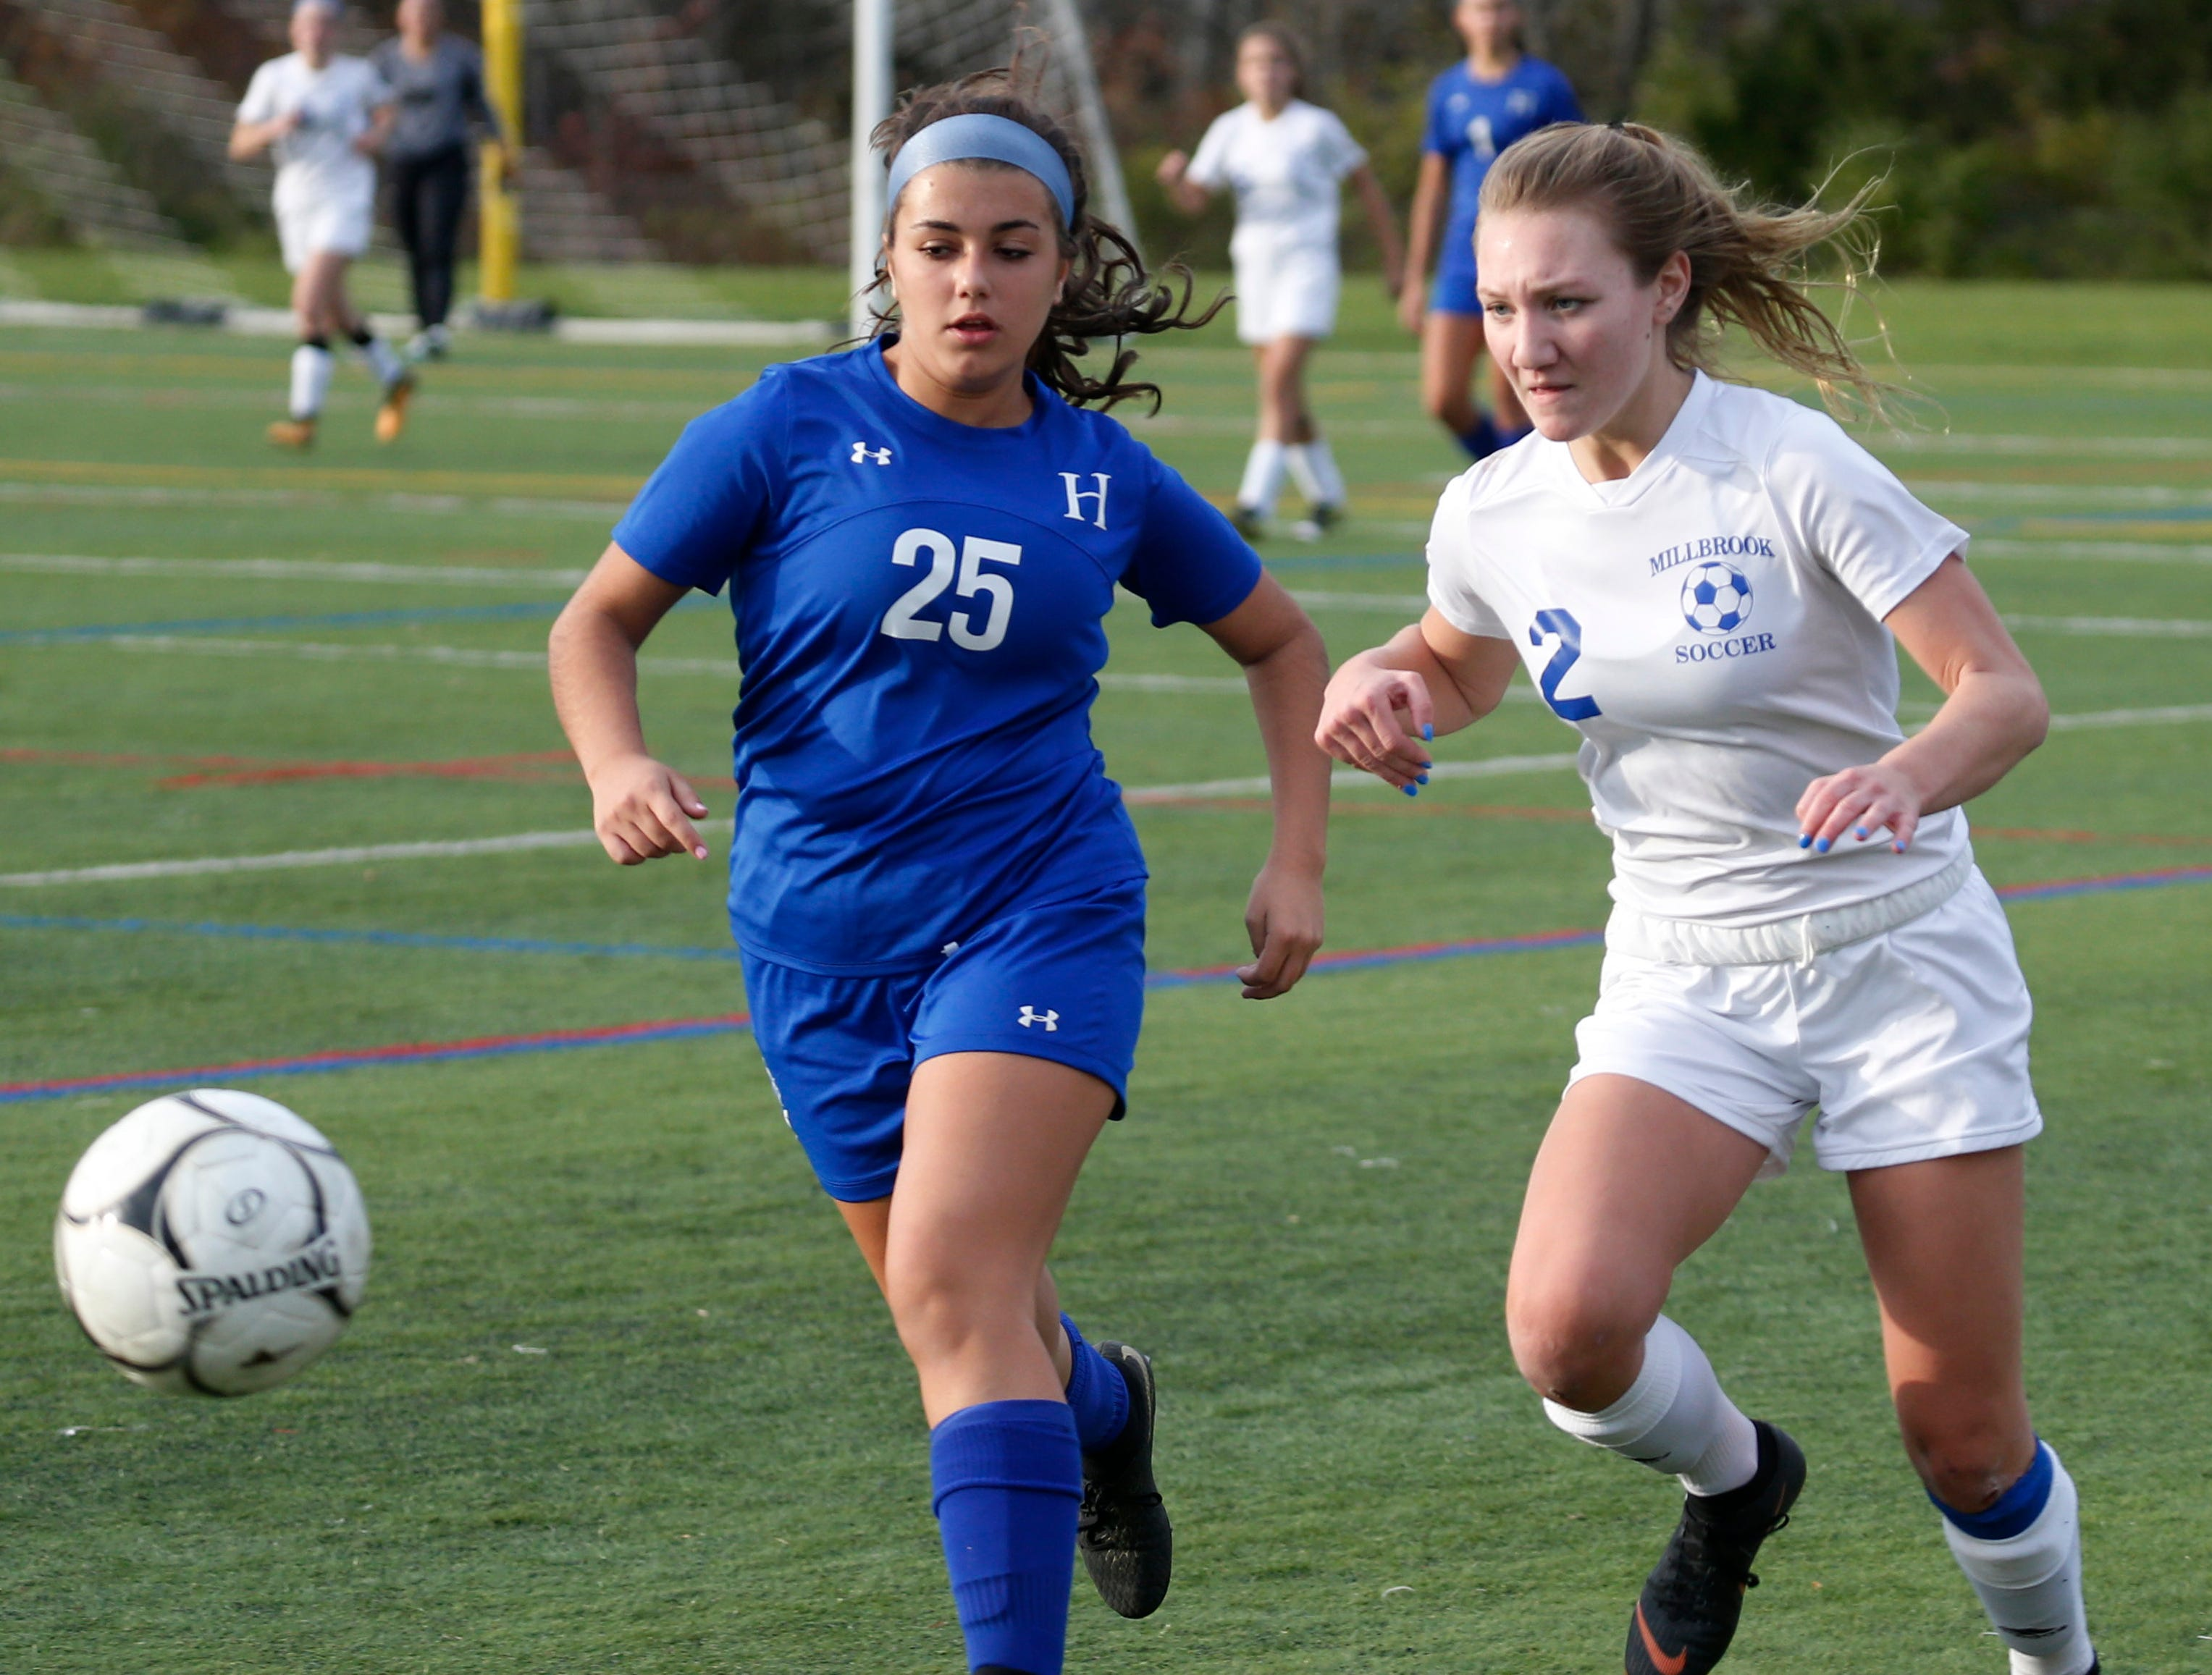 Haldane defender Alexandra Ferreira goes after a loose ball alongside Millbrook's Arianna Radovic during the Section 9 Class C girls soccer final.